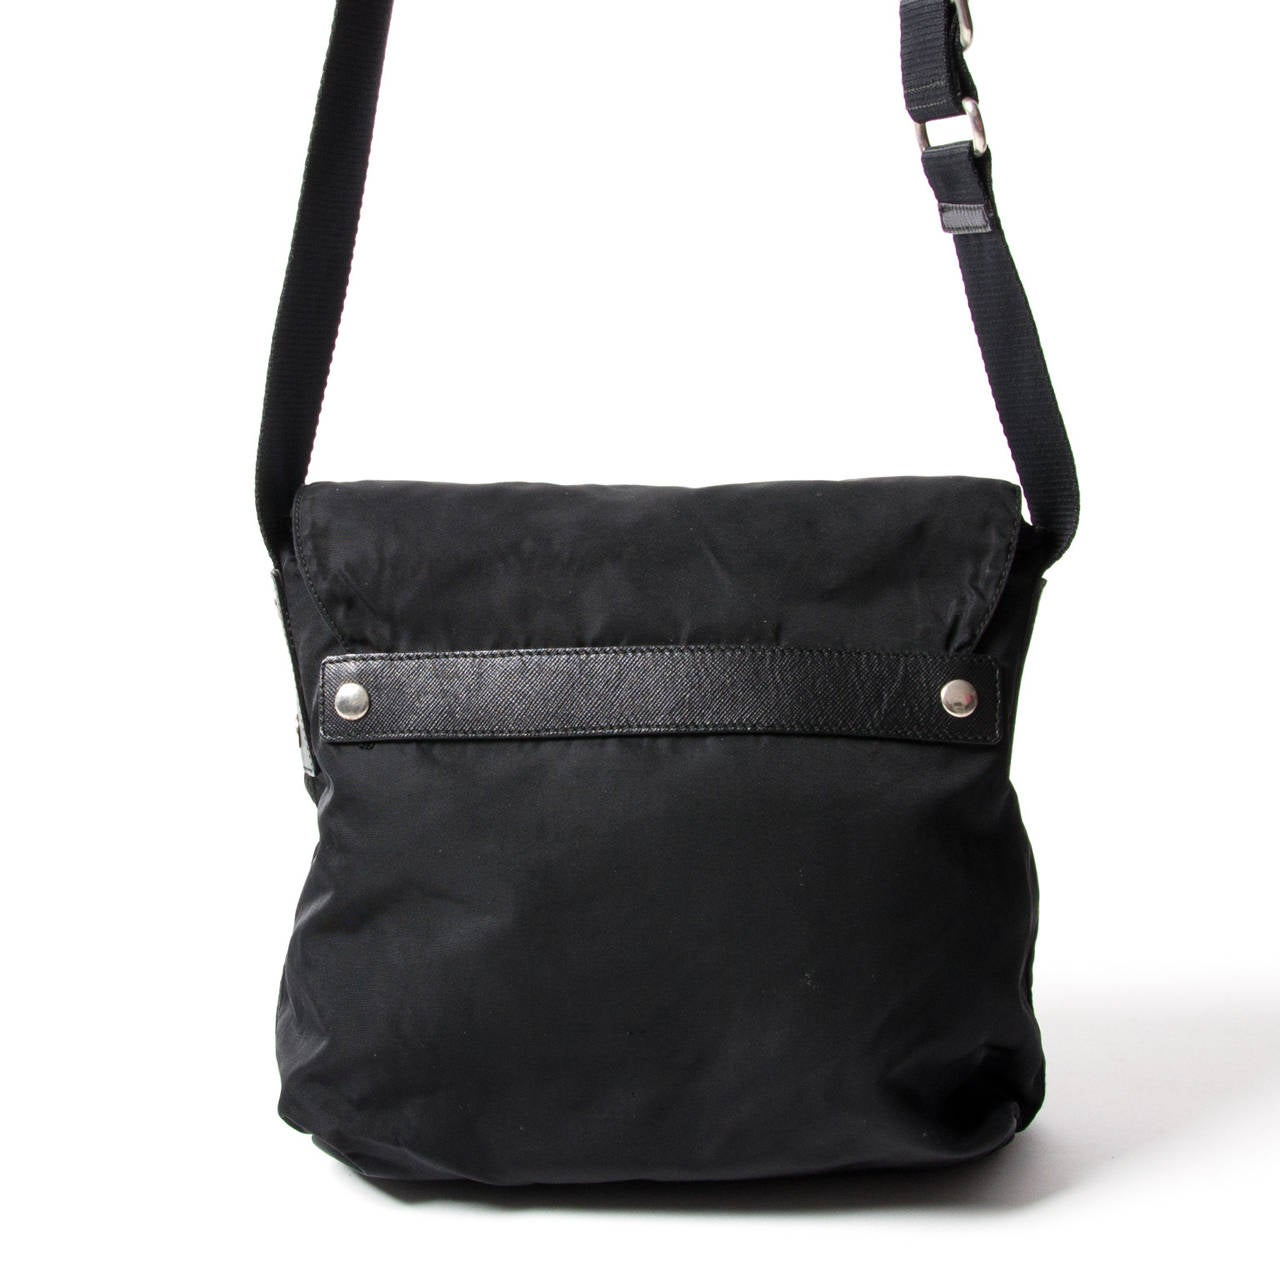 fc5e80cf0ba0 ... norway prada tessuto messenger bag in good condition for sale in  antwerp be 42ac3 317a5